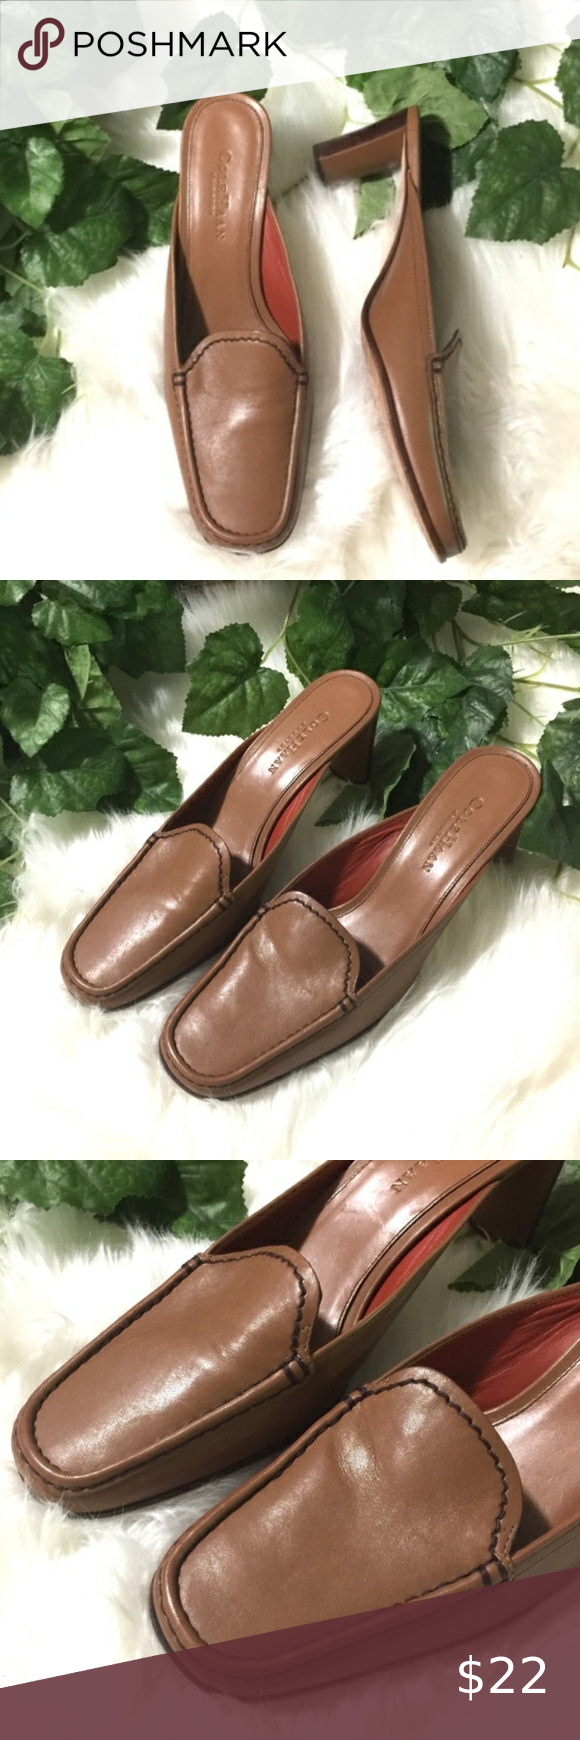 Cole Haan Mules Leather Narrow Sz 8AA